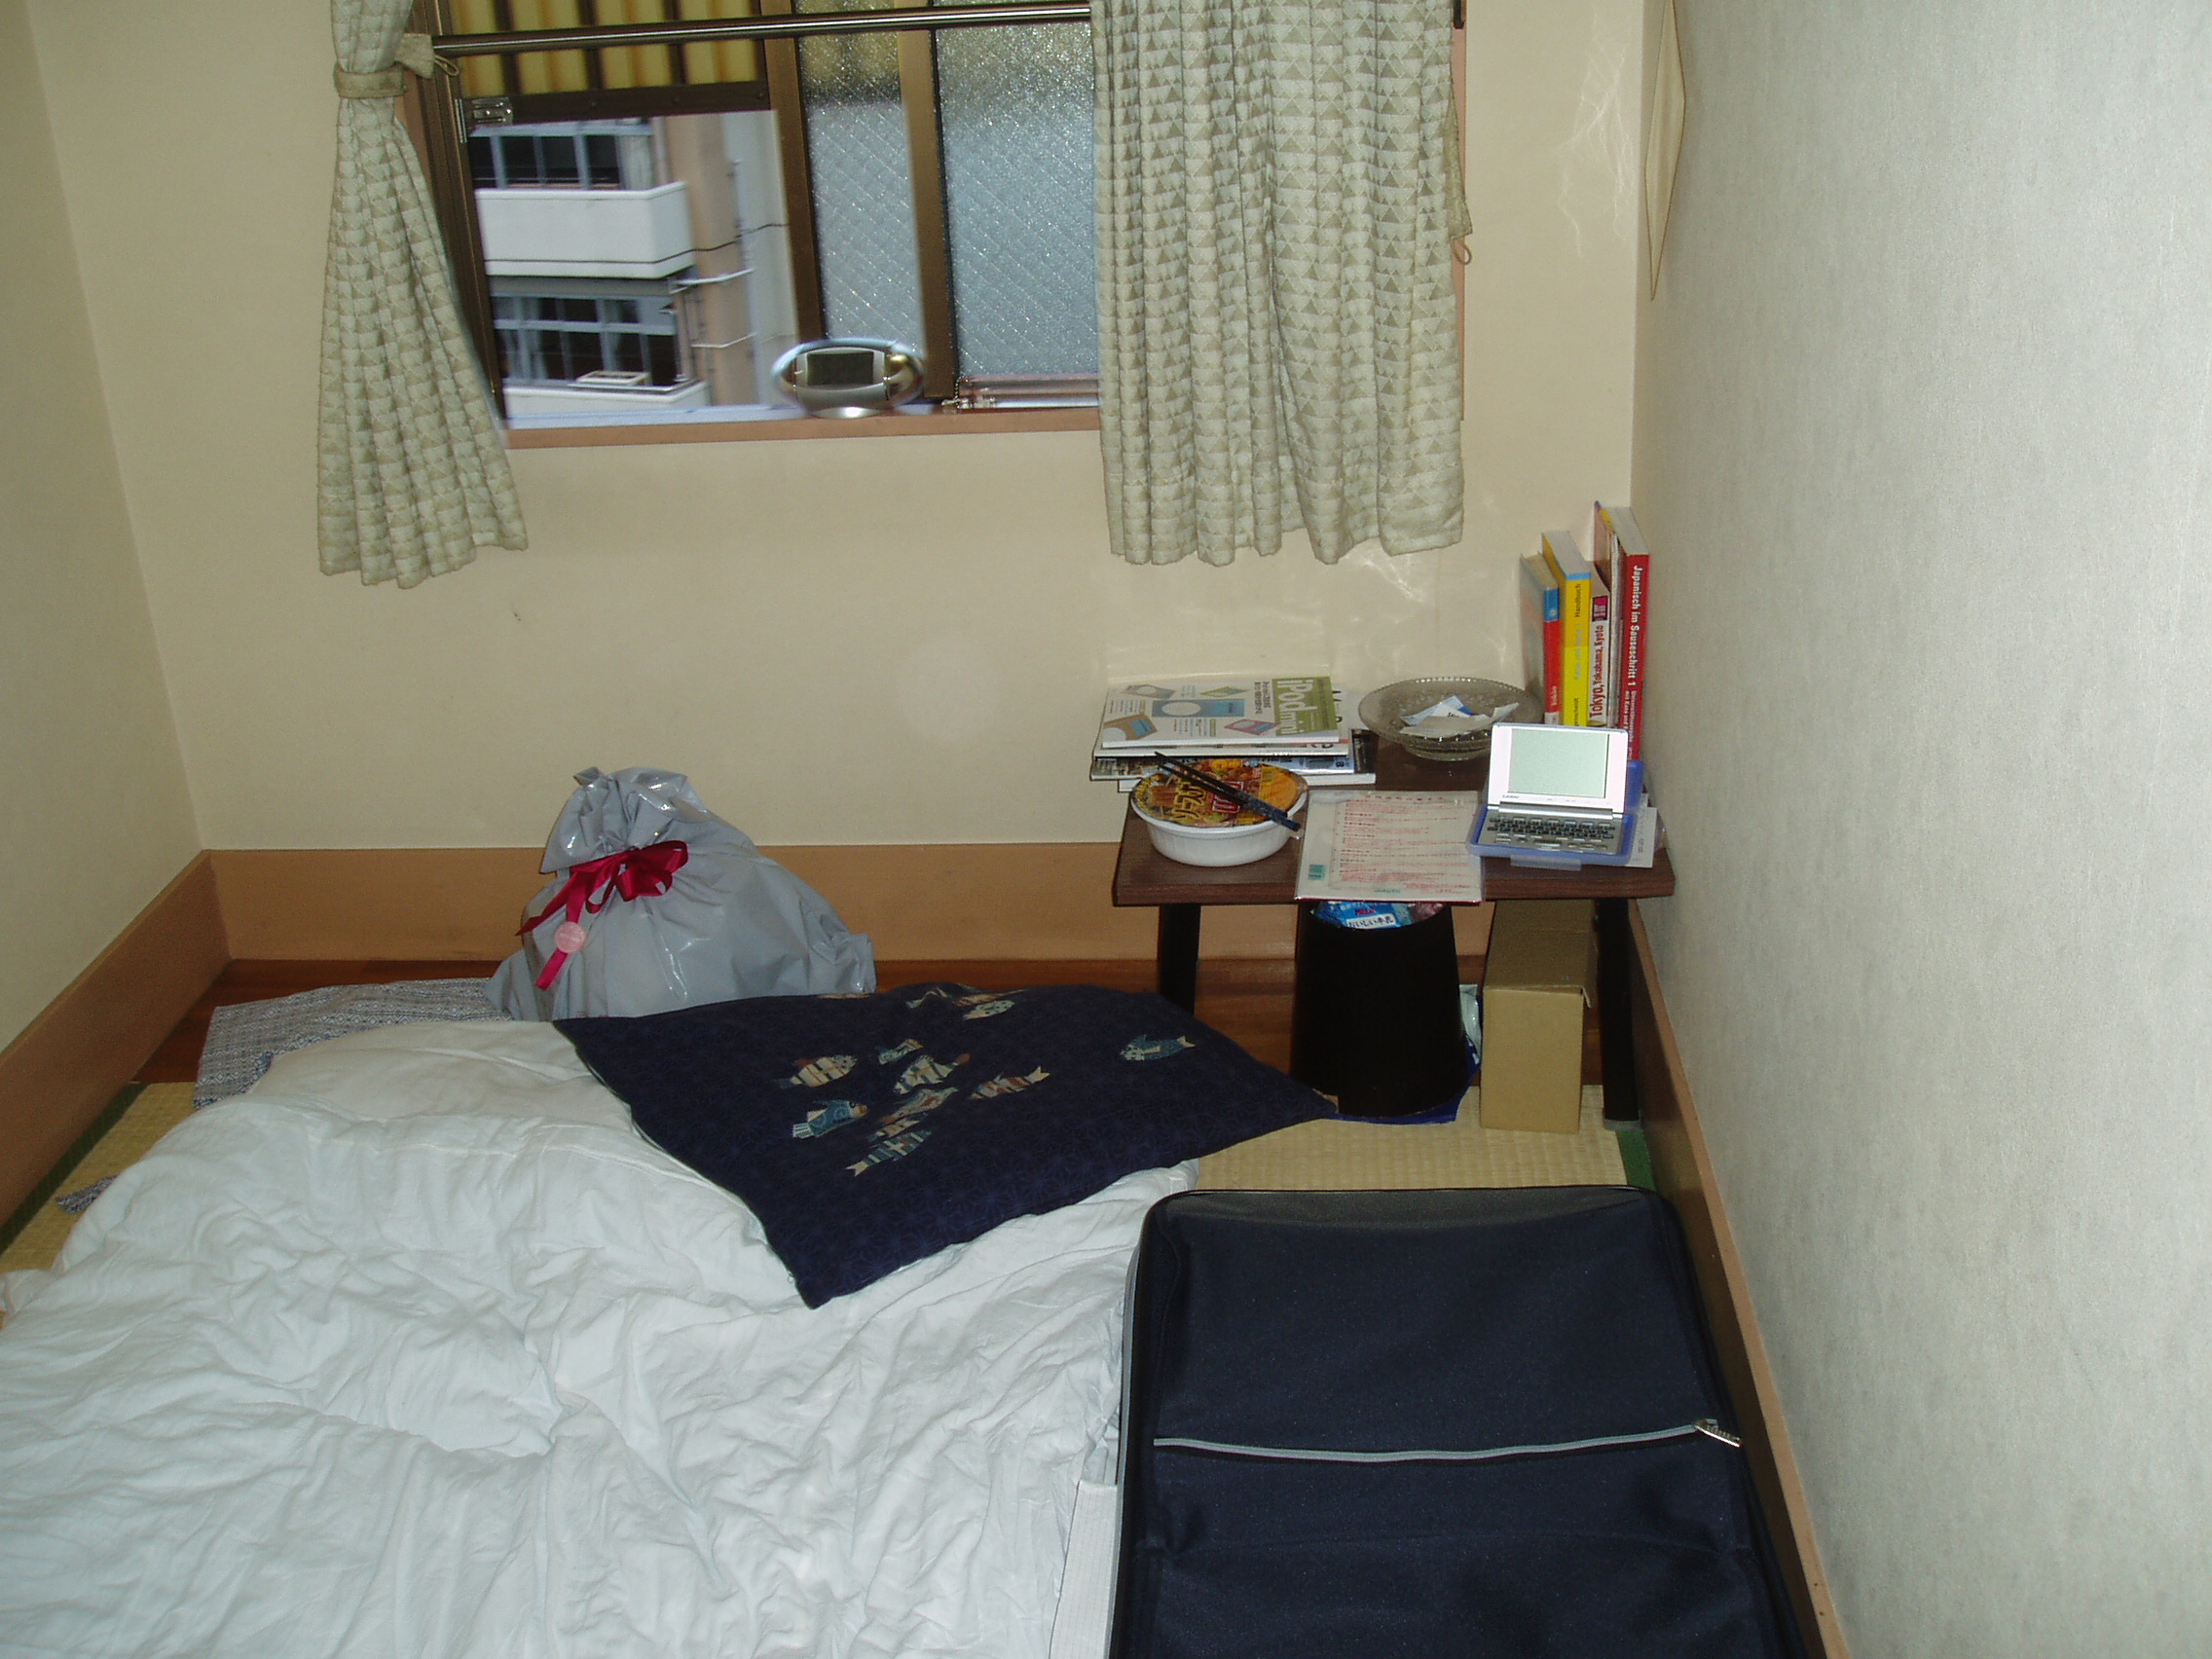 My hotel room with stuff I bought